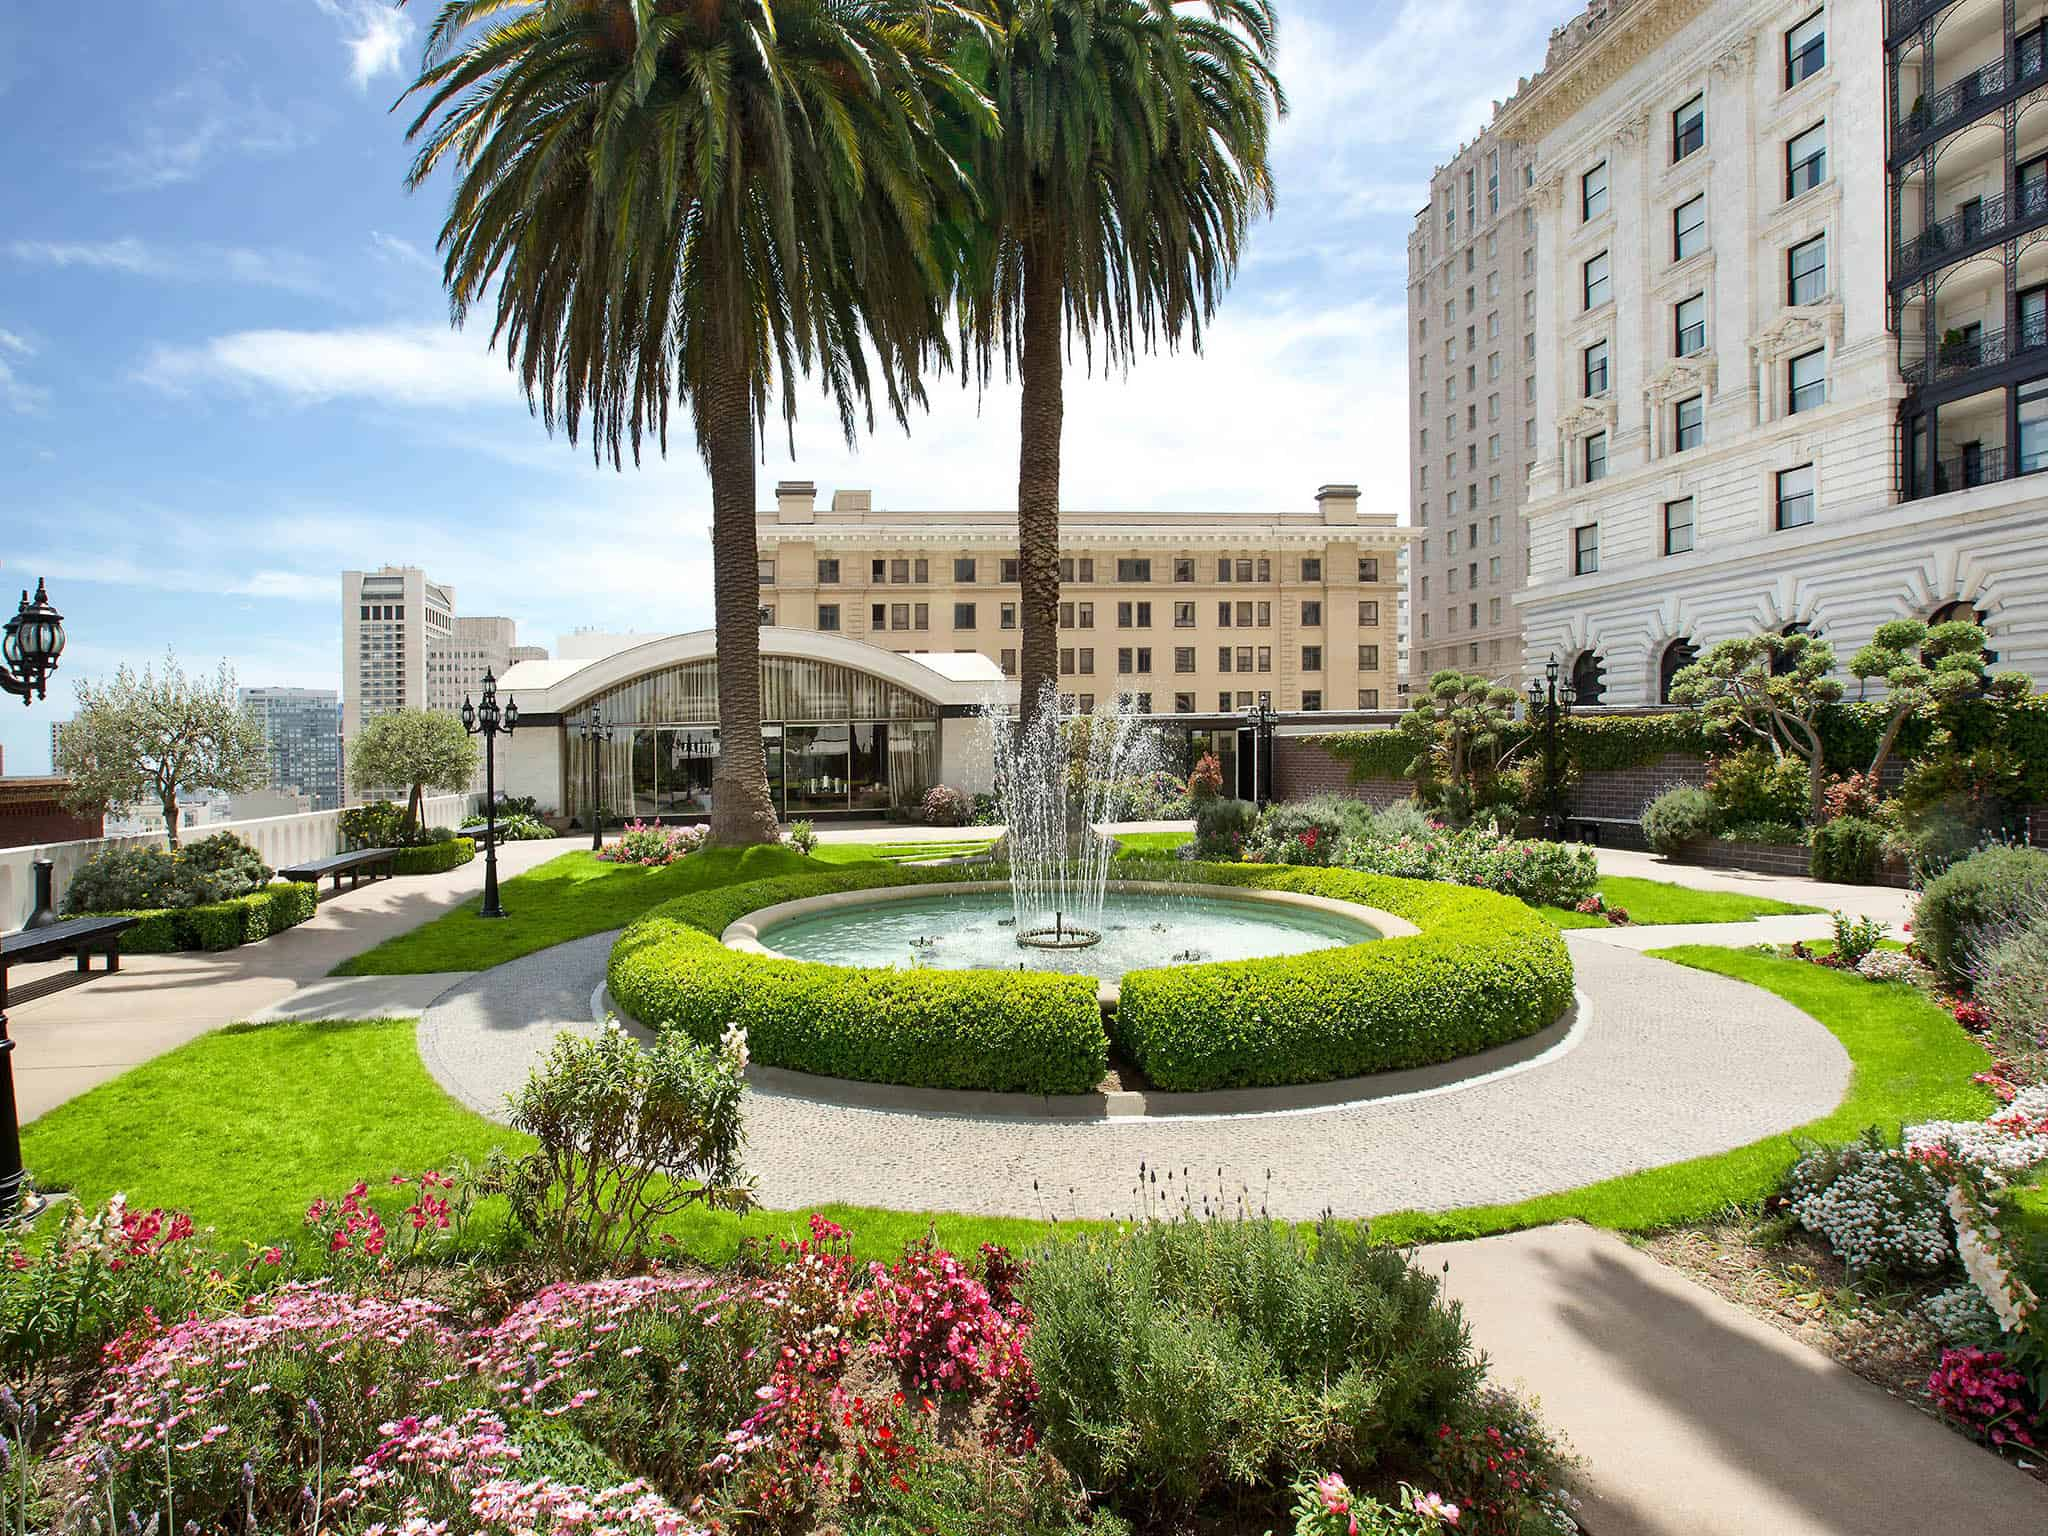 Fairmont San Francisco garden, fountain, and palm trees